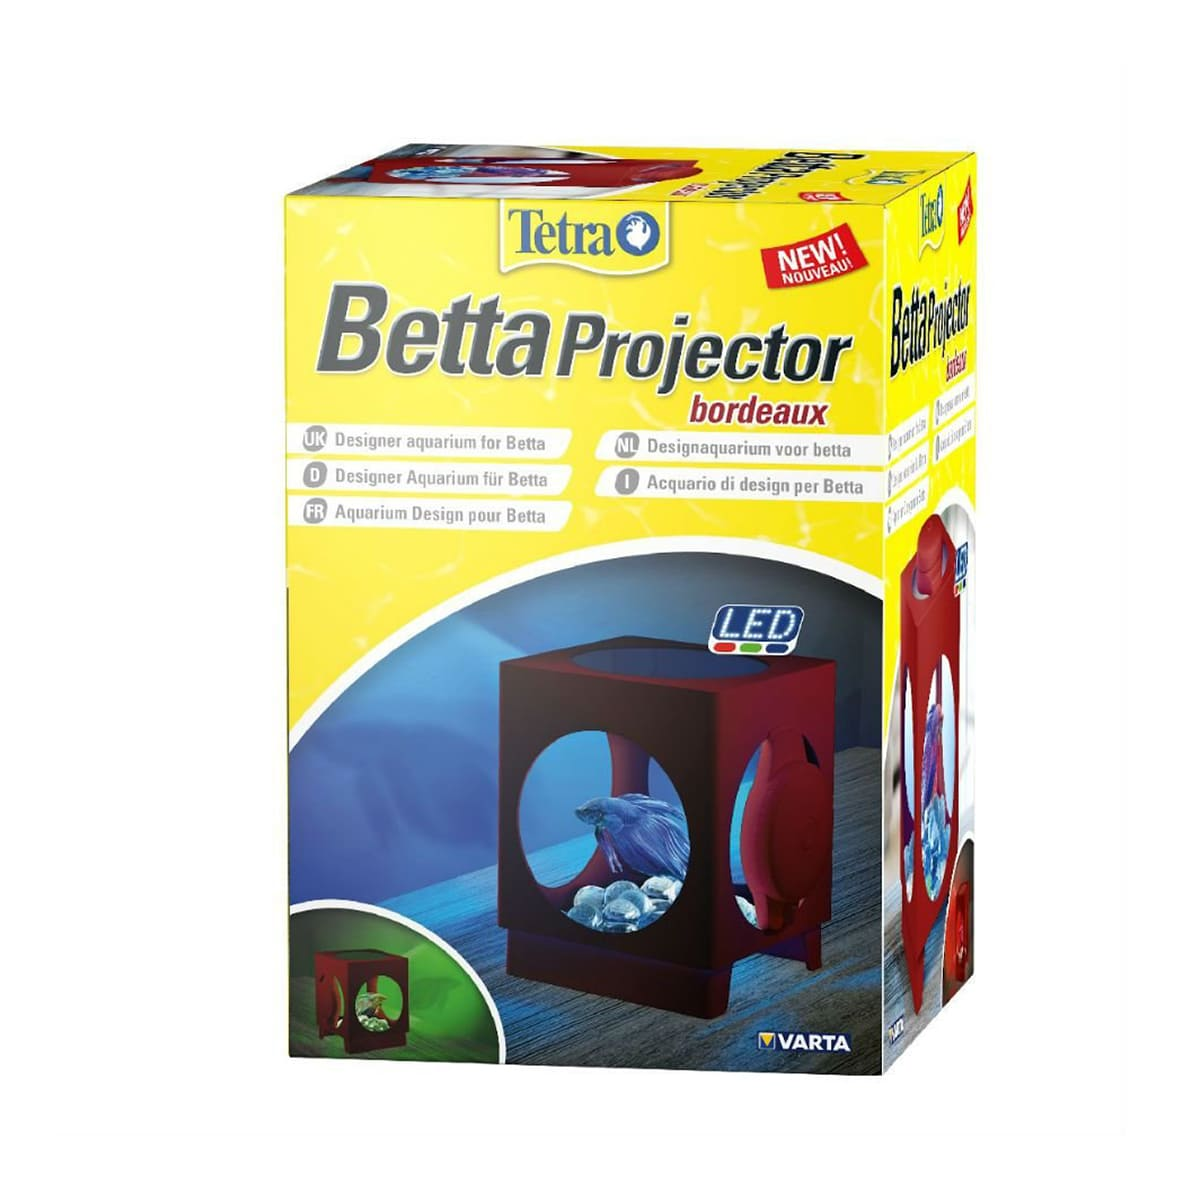 Tetra Betta Projector Beteira com Led 1,8 litros